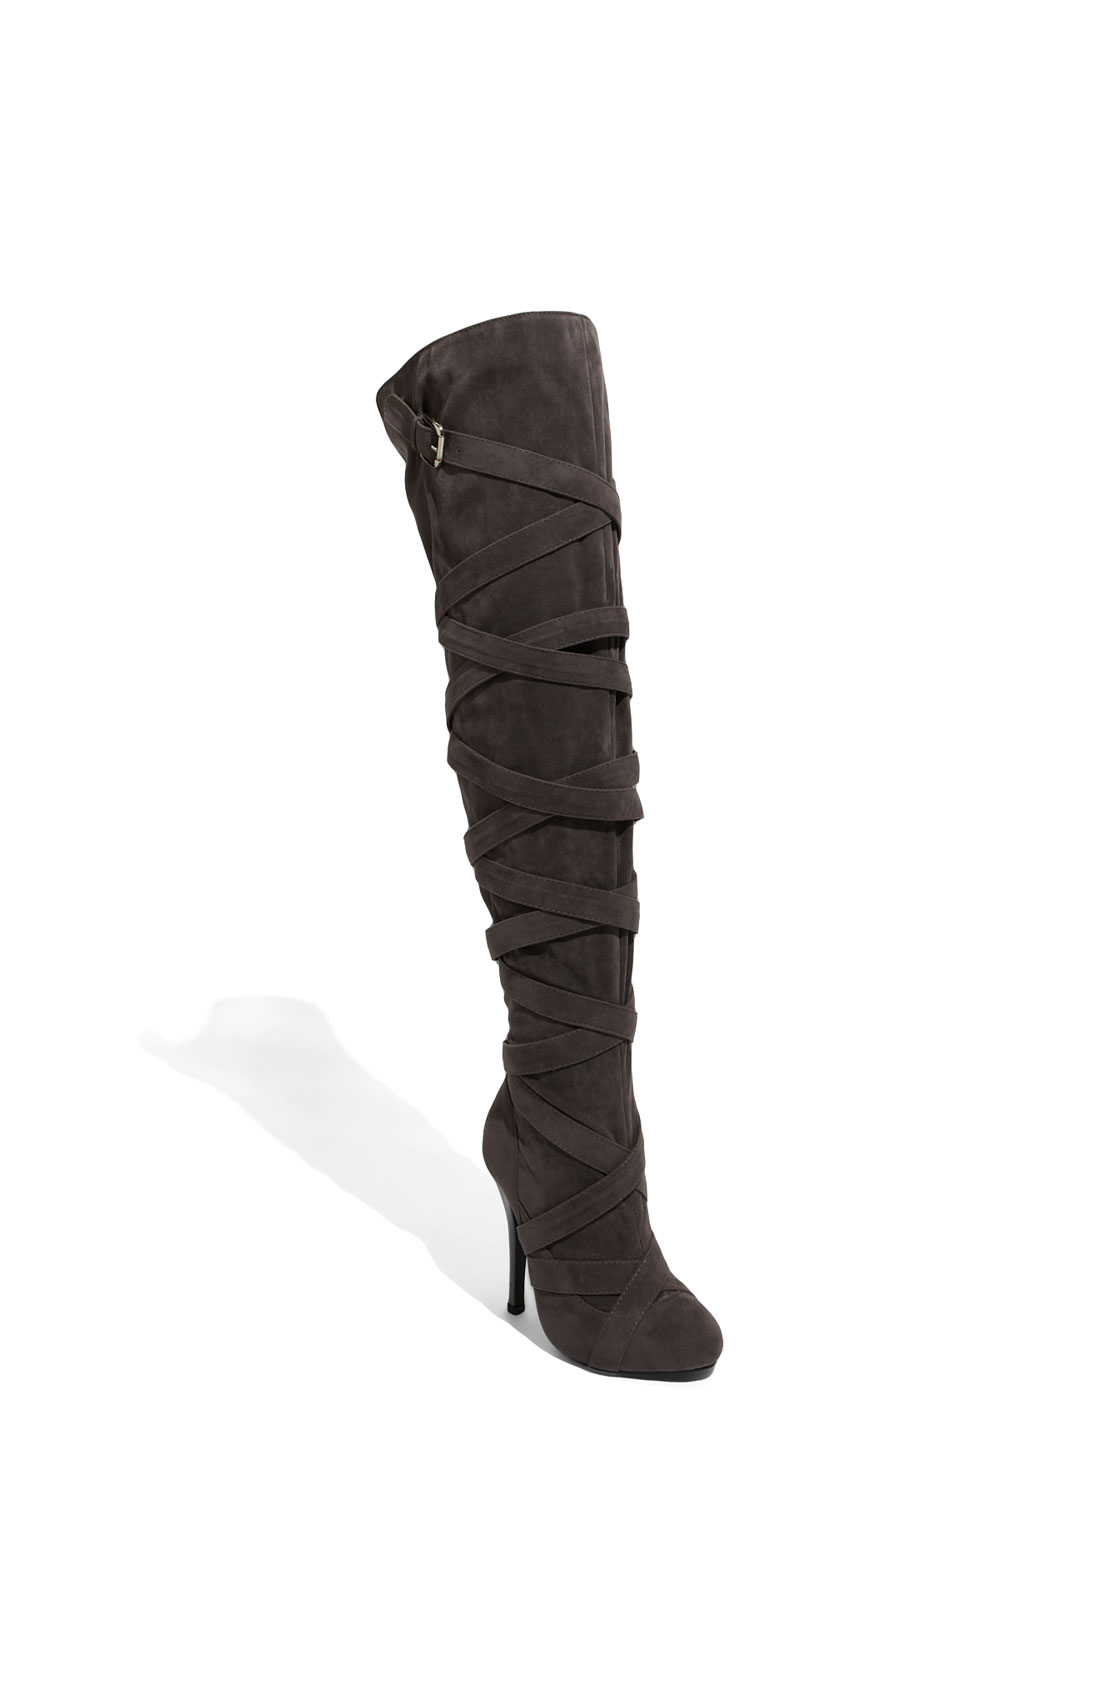 n y l a freemont the knee boot in gray grey suede